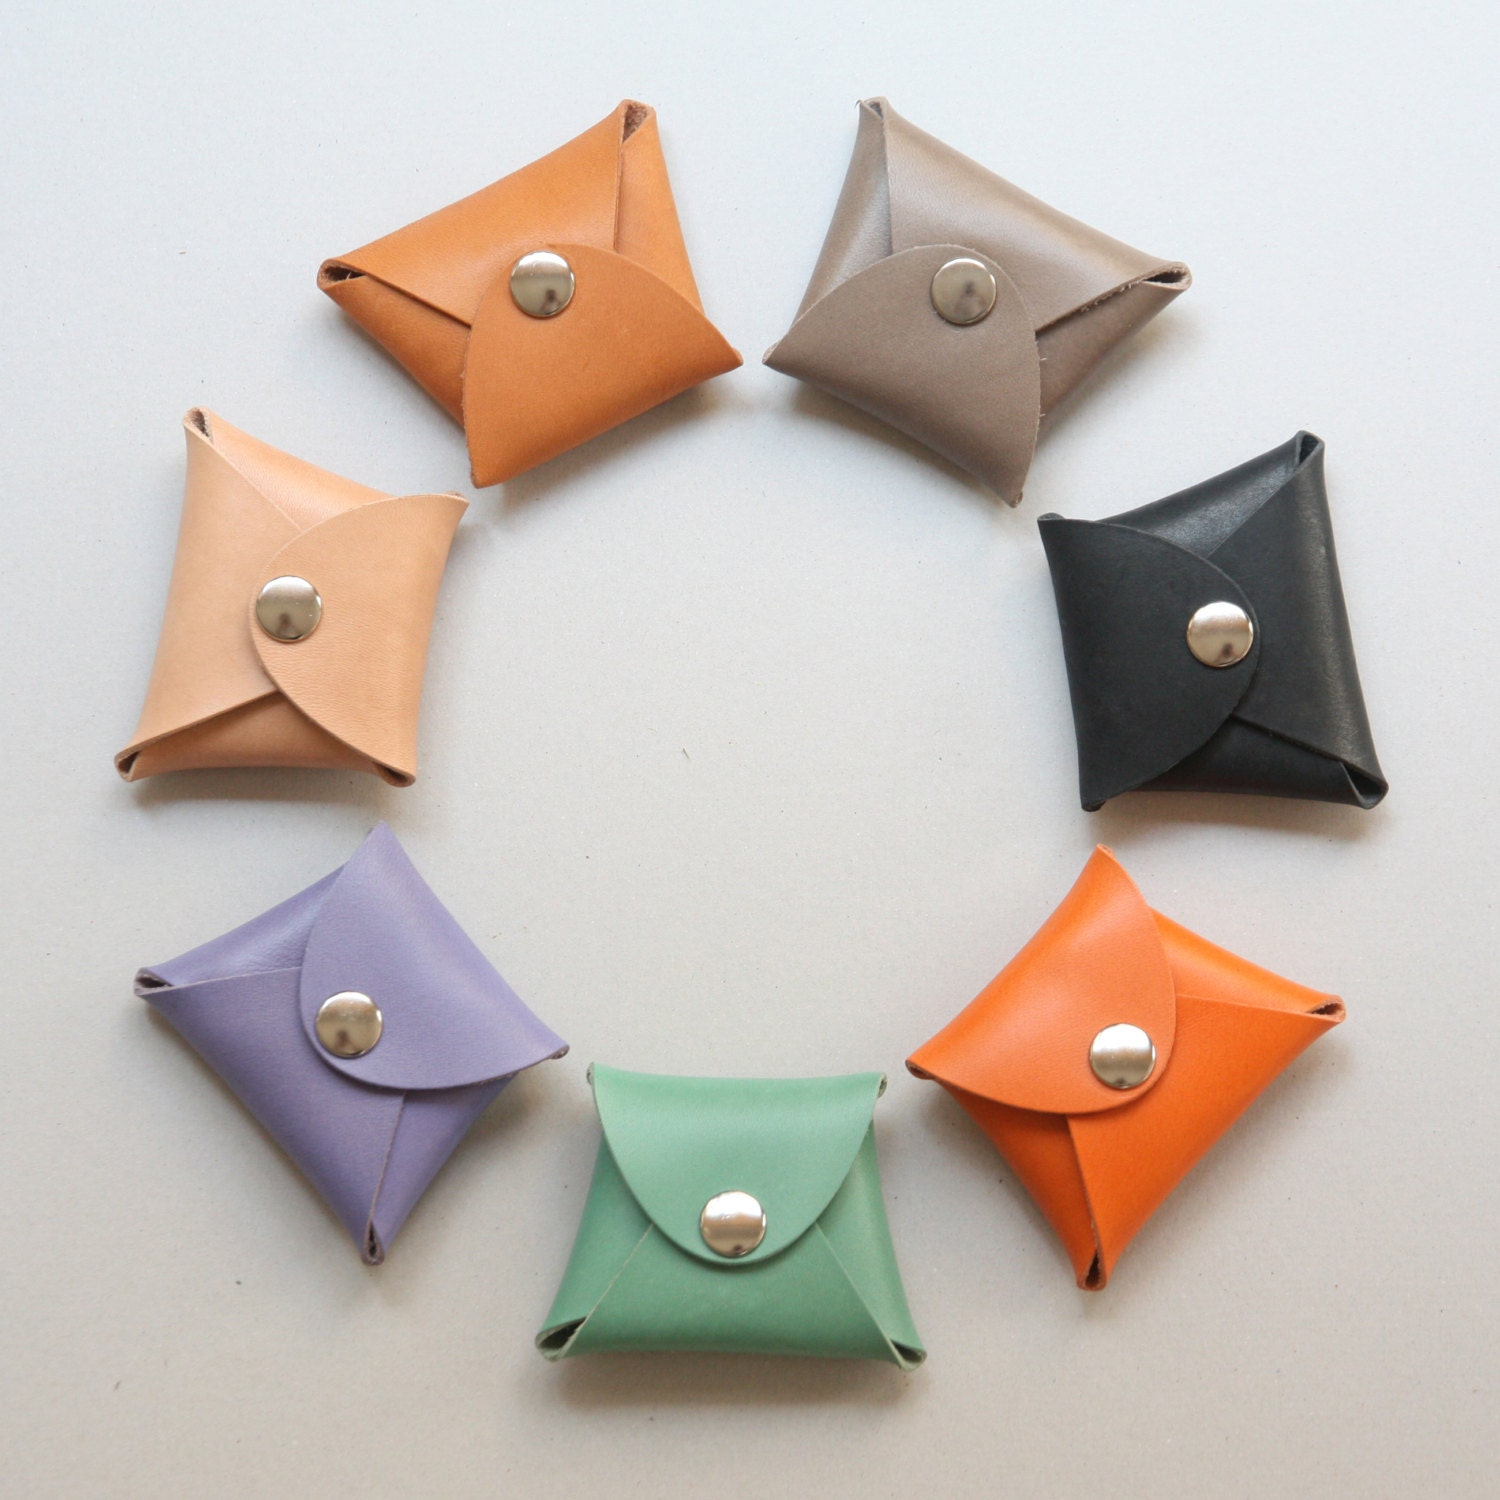 Leather Coin Purse Coin Case Origami Design by KonceptLeather - photo#21